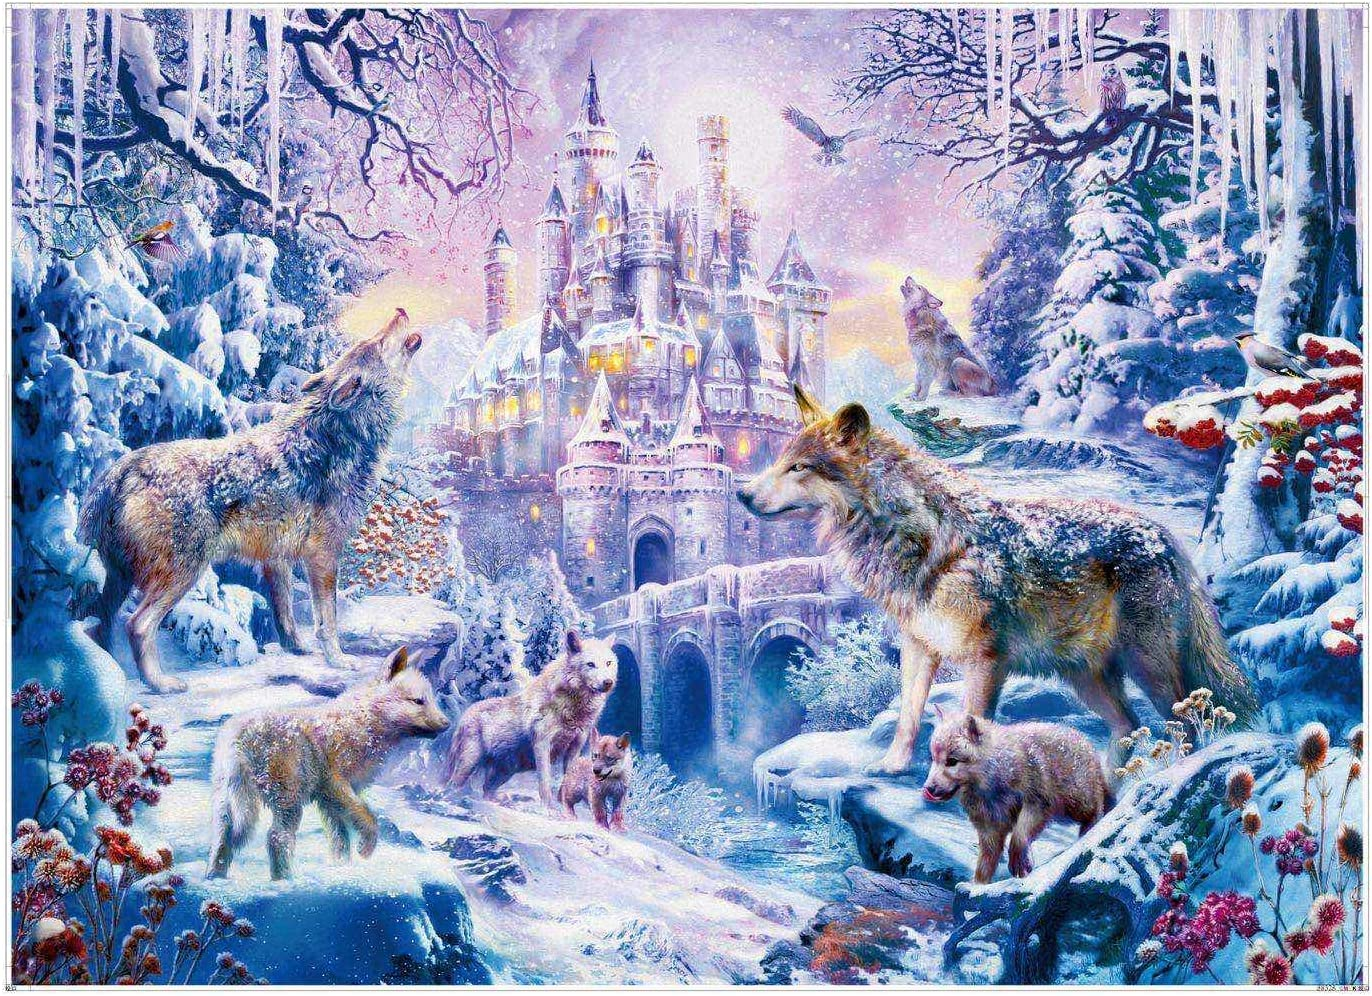 Cardboard Puzzles Floor Puzzle 70 x 50 cm iLink 1000 Piece Jigsaw Puzzle Wolf Castle Relax Puzzles Games-Brain Teaser Puzzle- for Adults and Teens Gifts